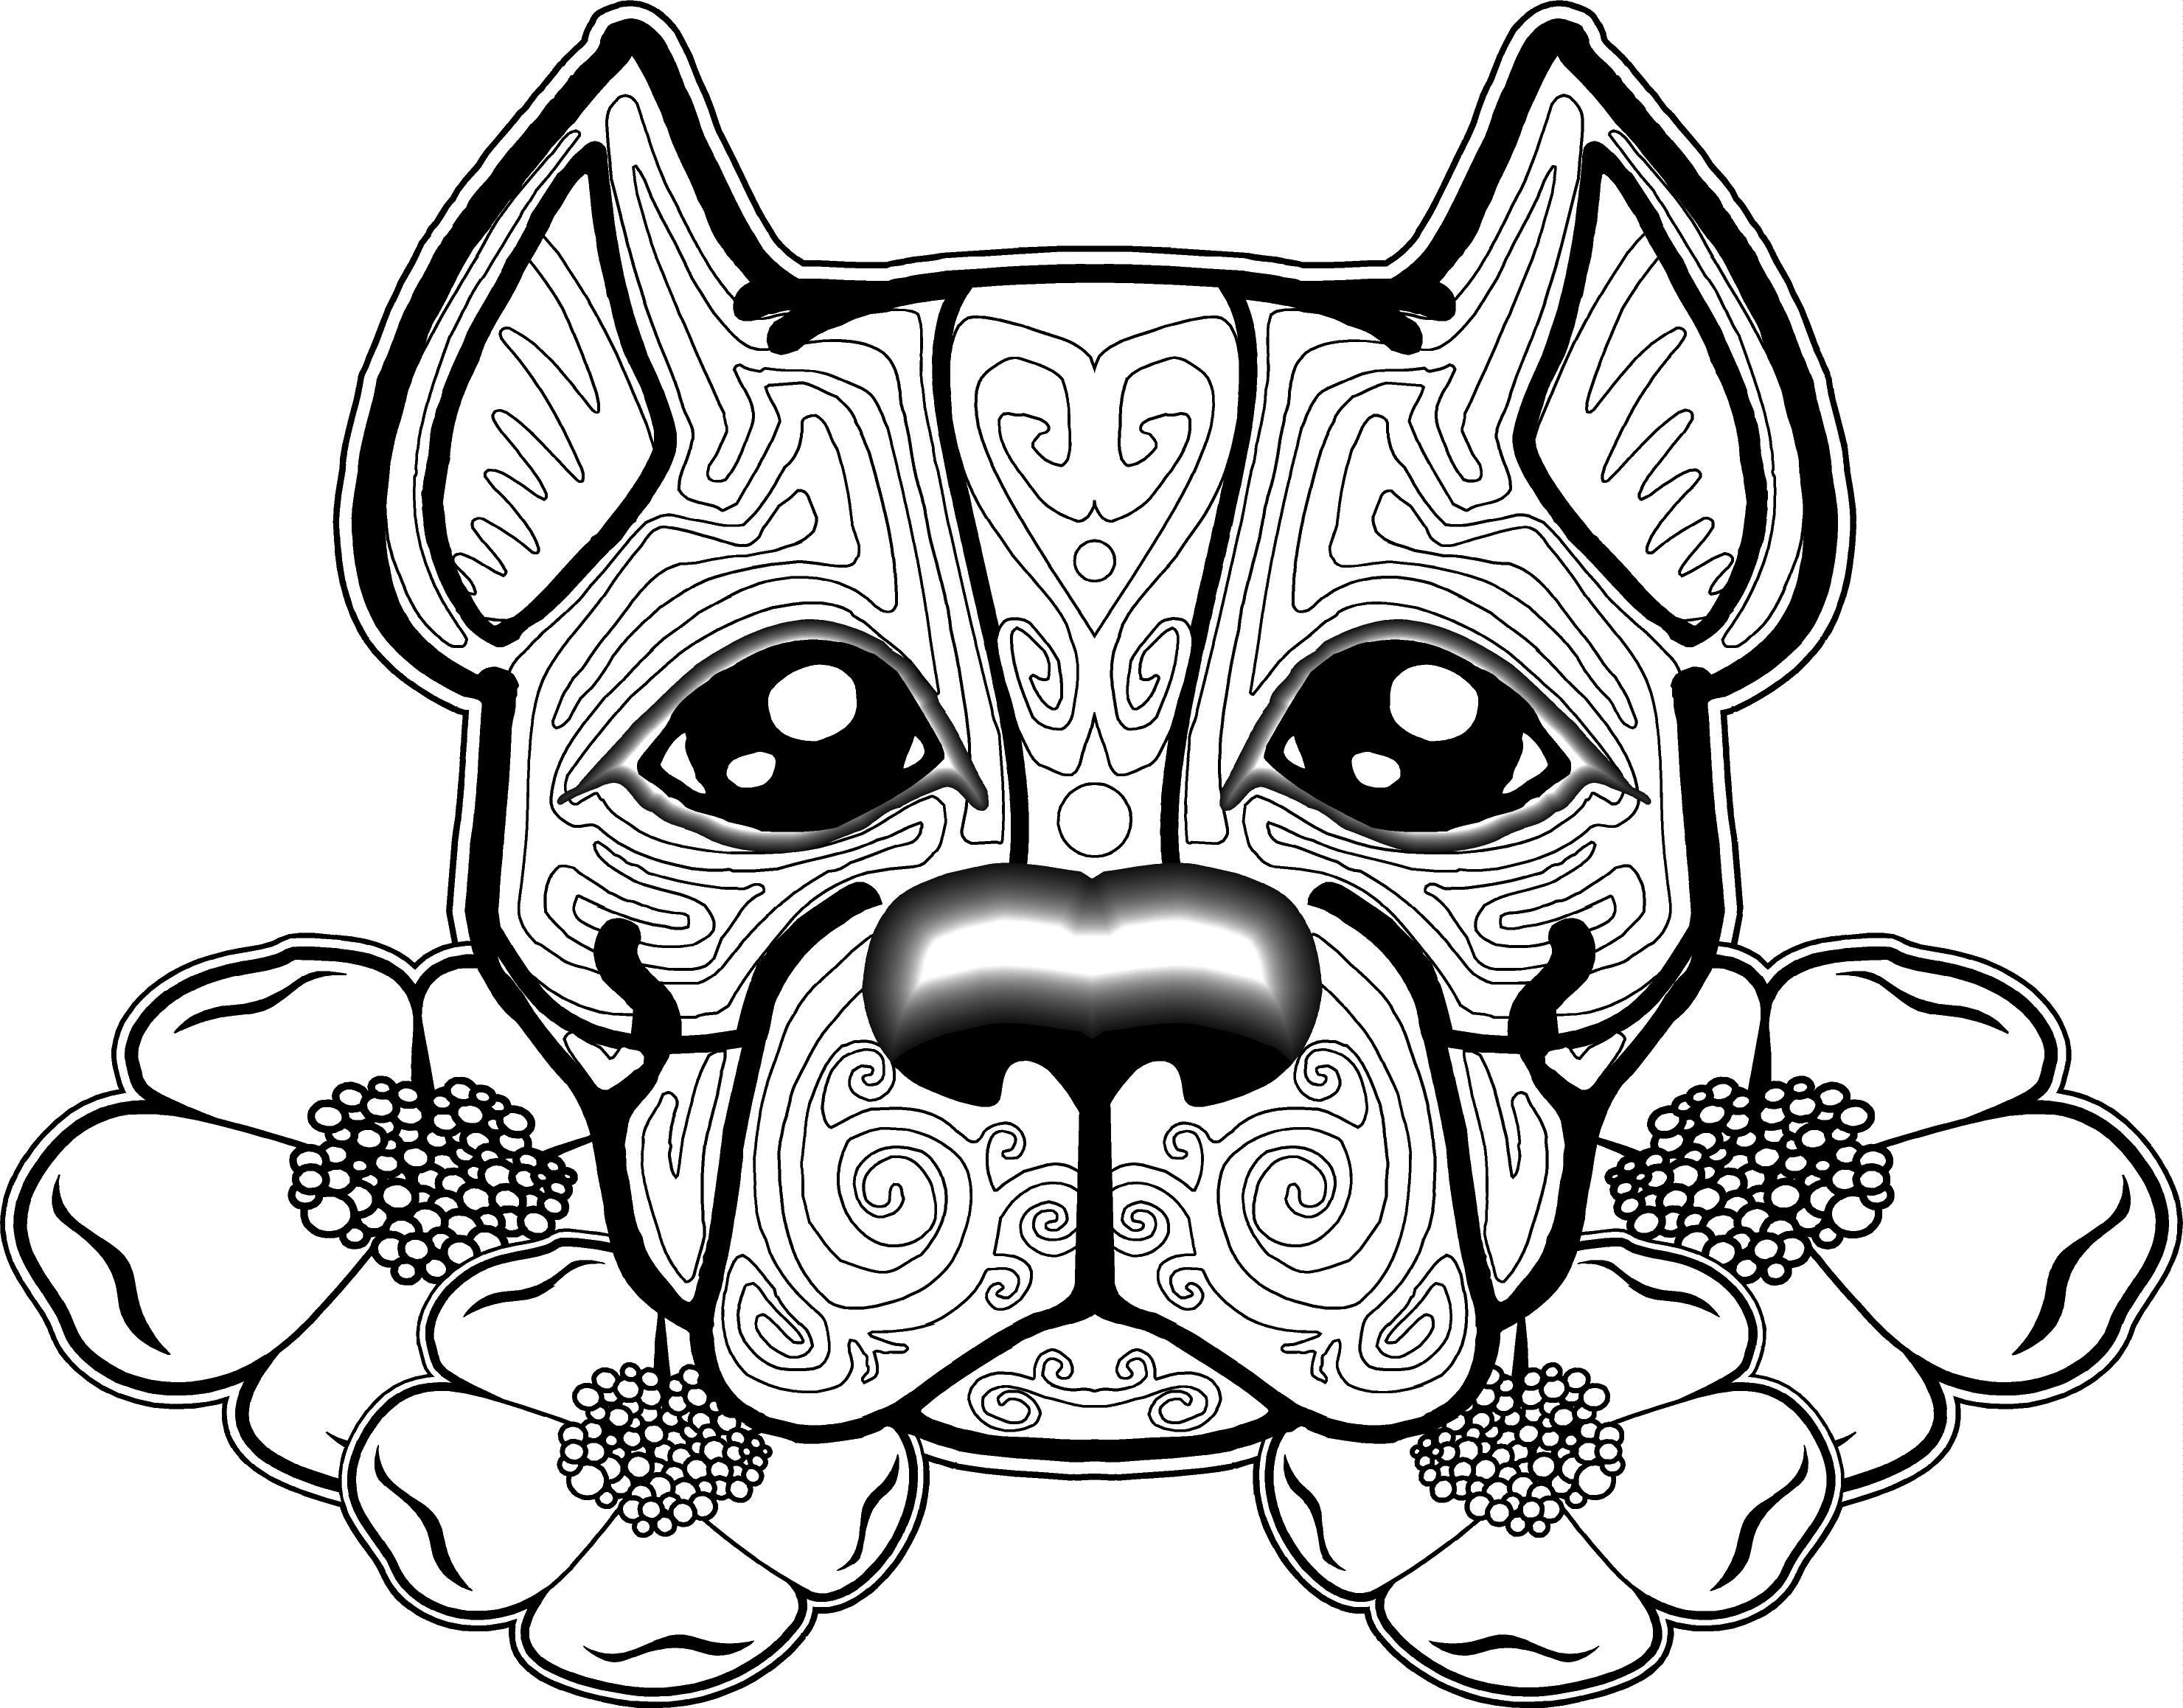 Free Dog Coloring Pages For Adults | Free Printable Coloring Pages - Free Printable Dog Coloring Pages